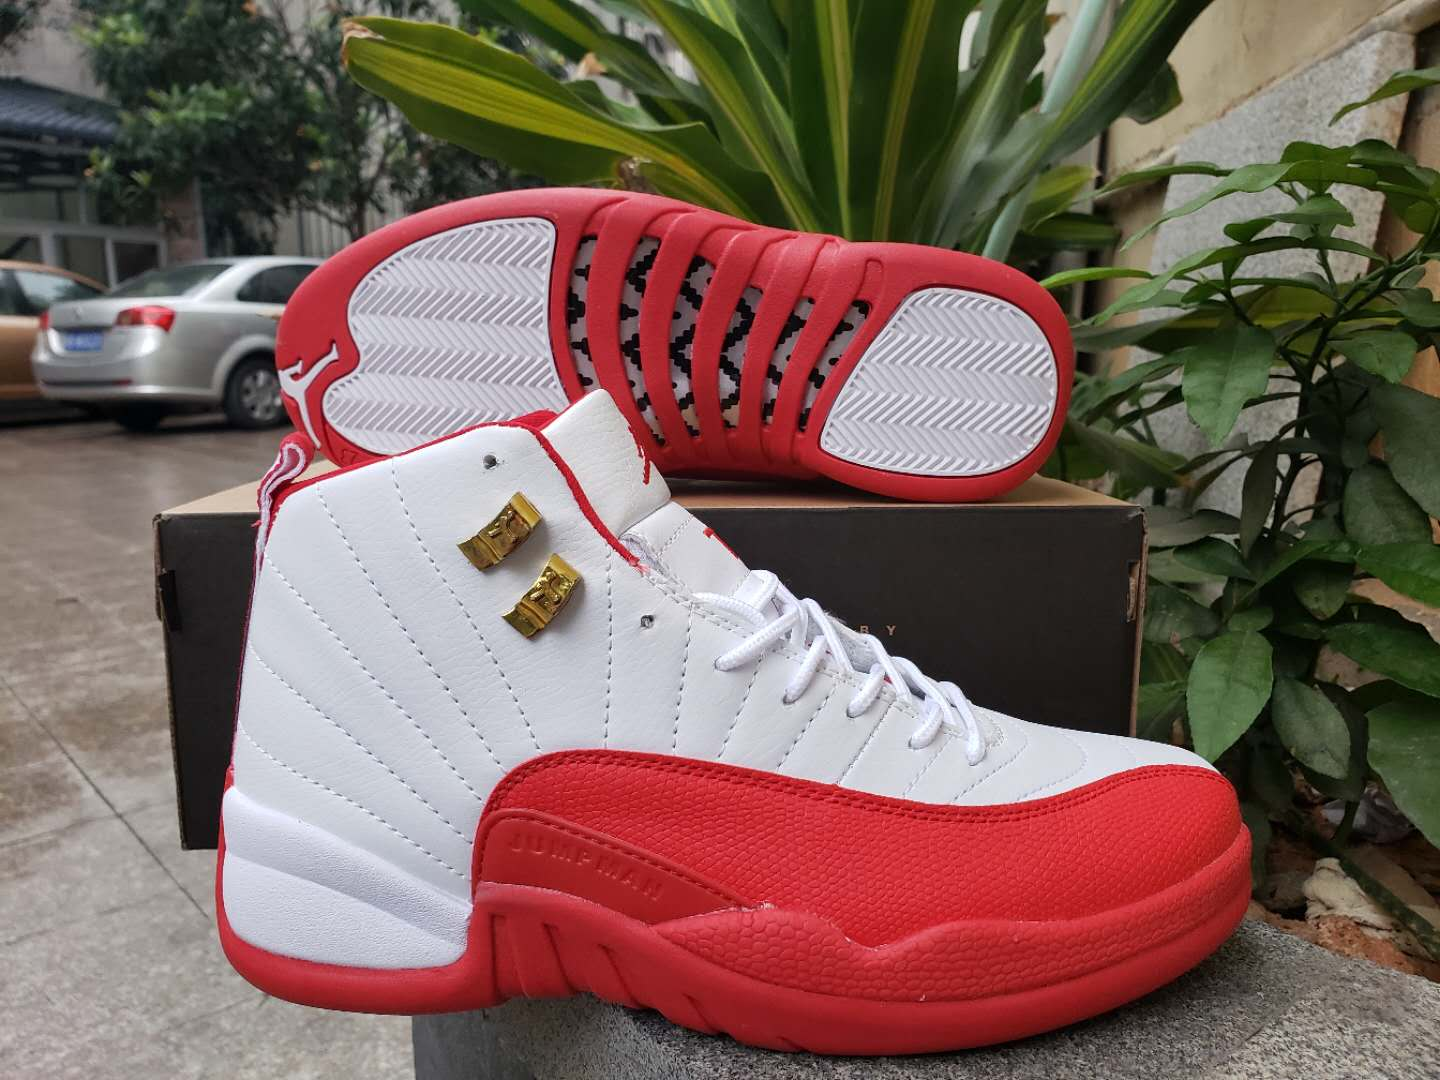 2019 Air Jordan 12 Retro White Water Red Shoes